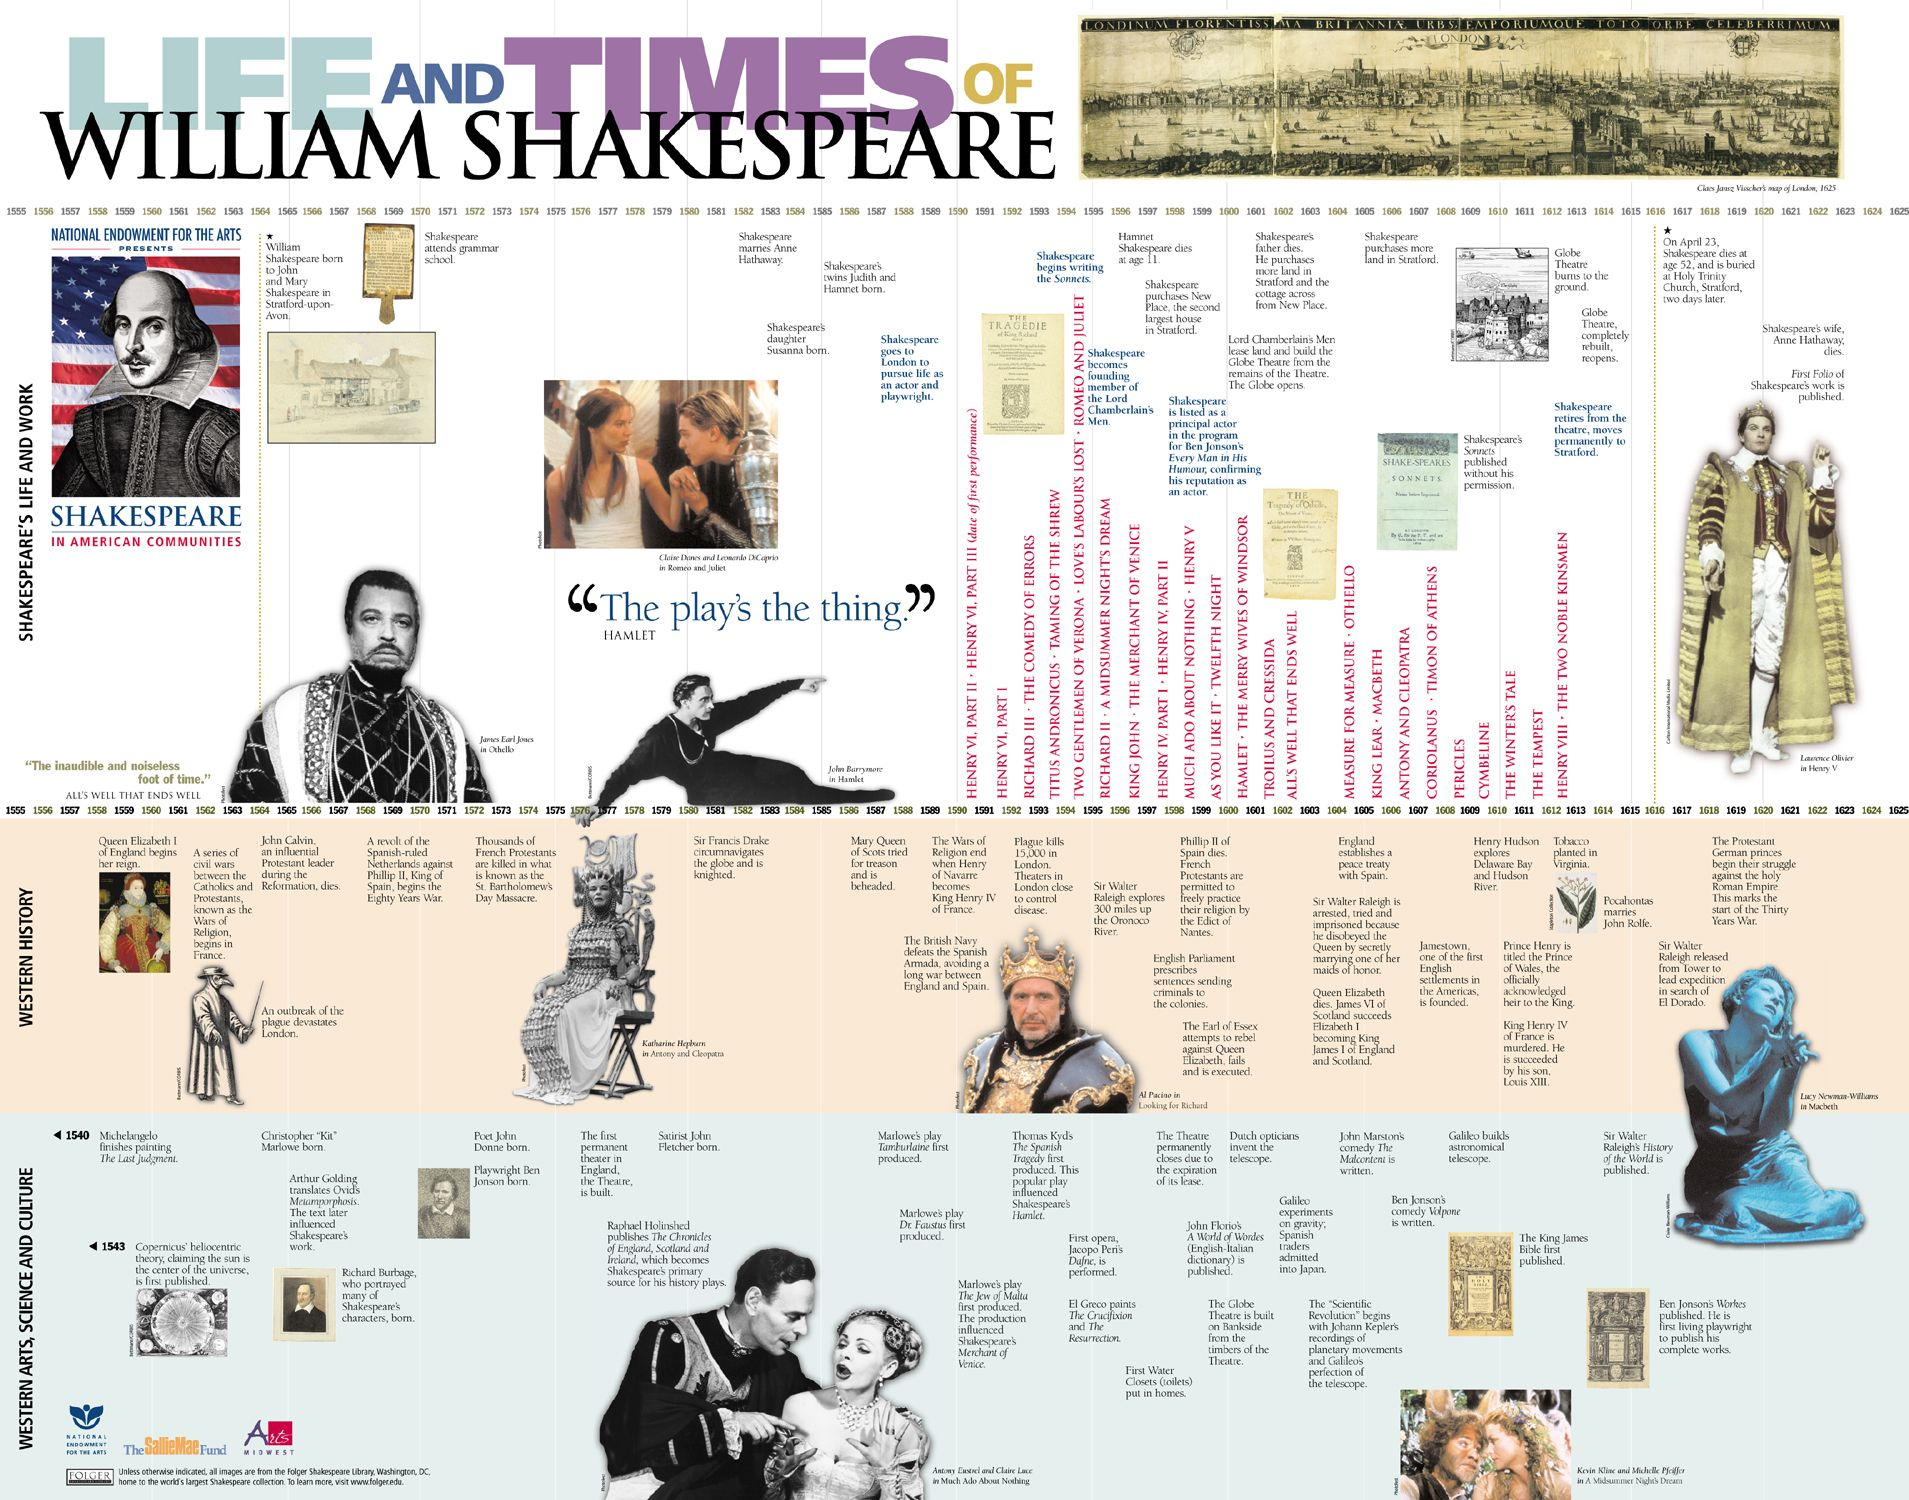 This Graphic Shows A Timeline Of Shakespeare 39 S Works And Other Worldy Happenings I Think It 39 S